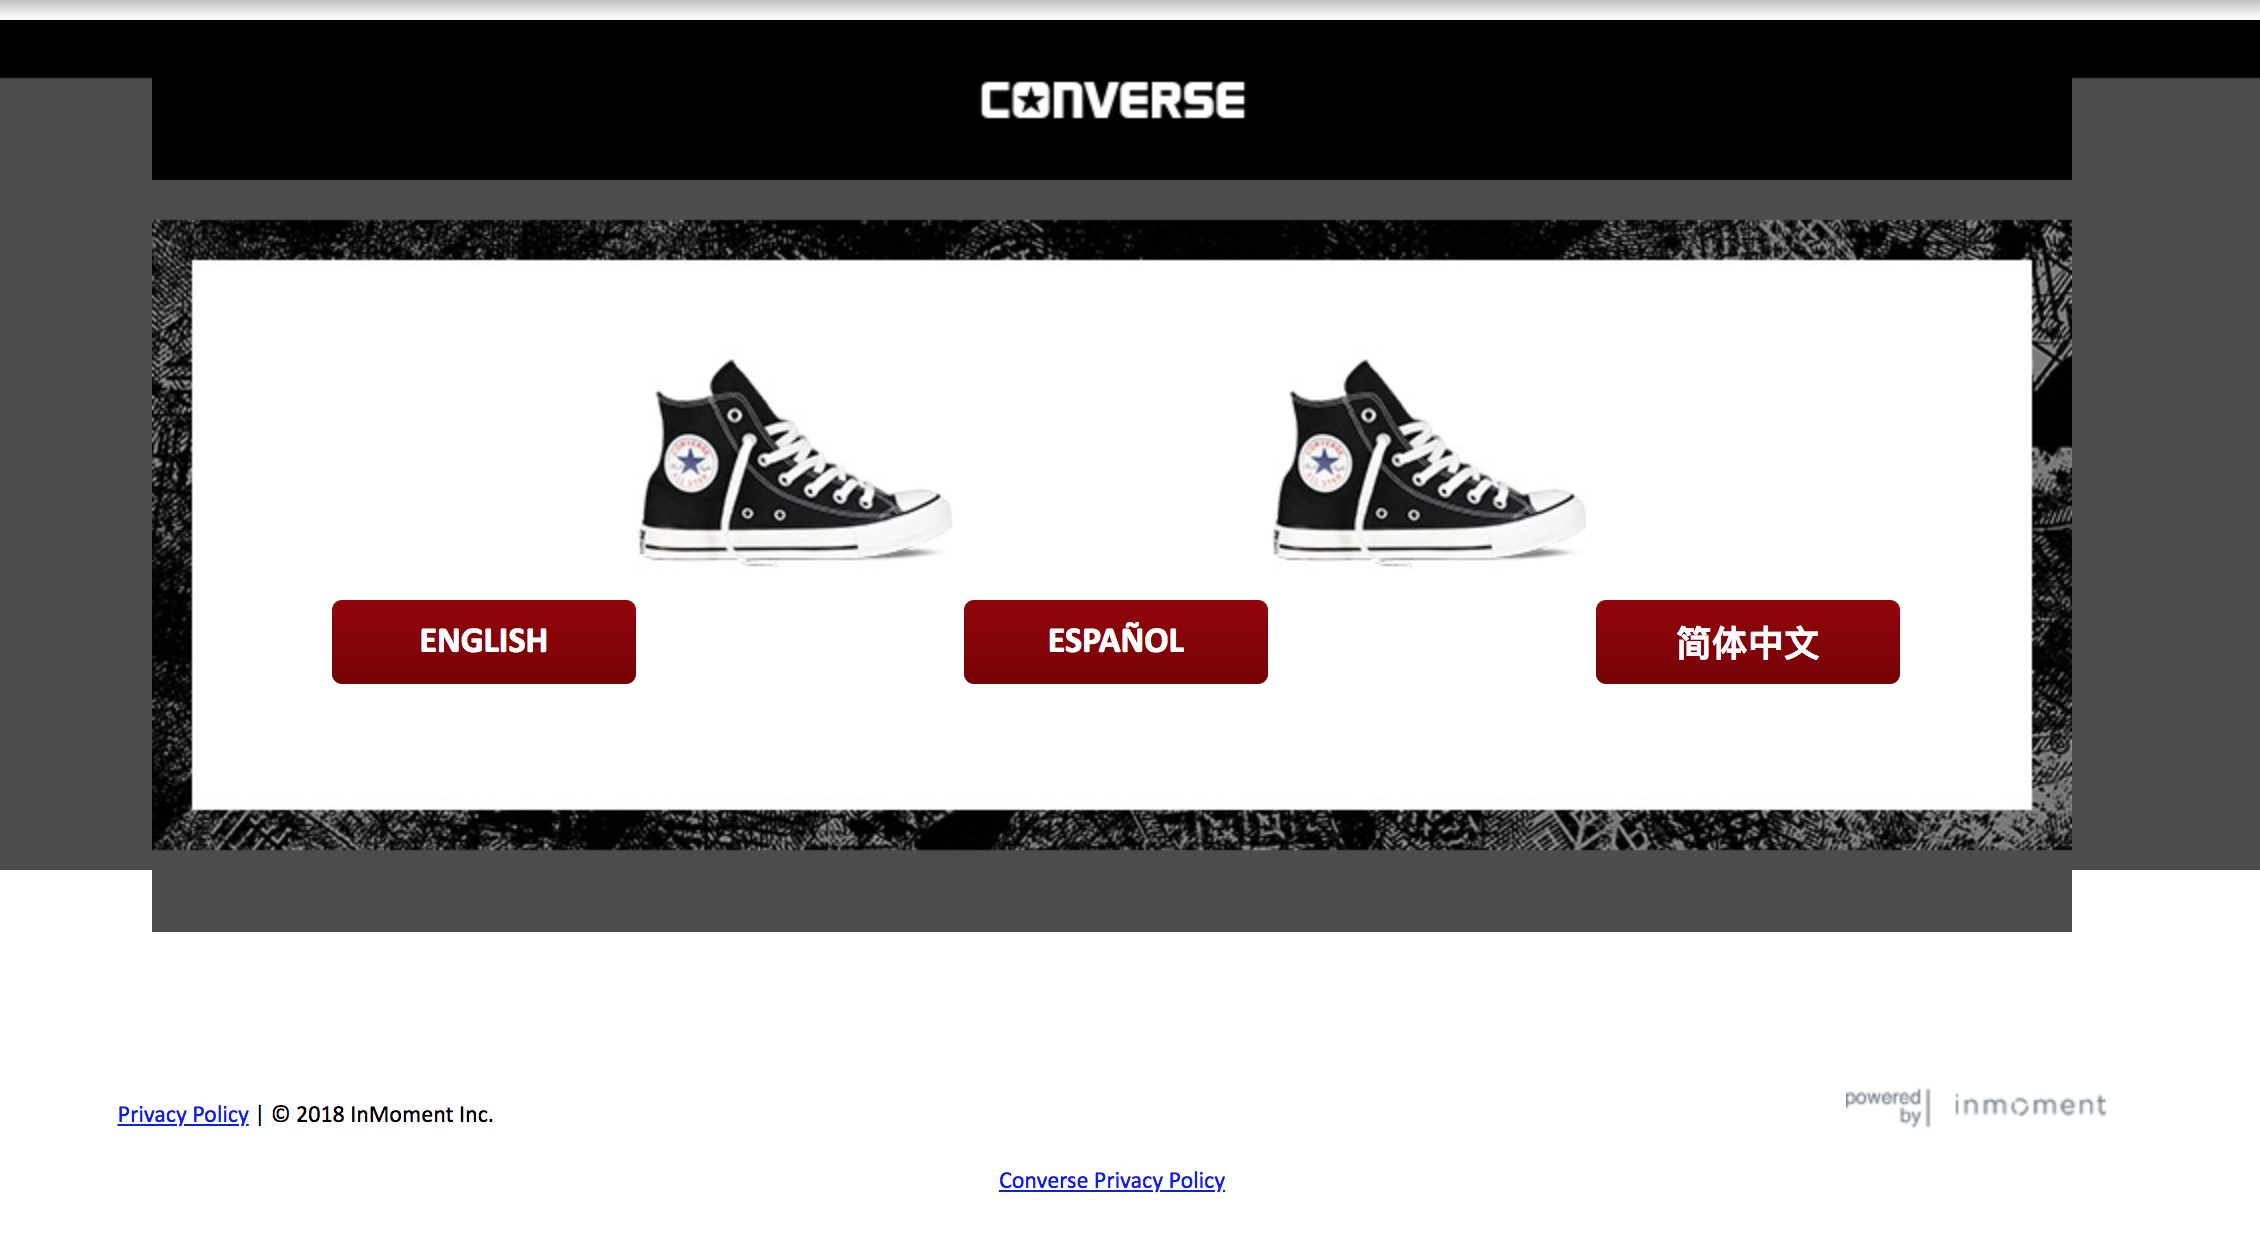 038073cf3d02 MyConverseVisit ― Take Official Converse® Survey ― Get  5 Gift Card